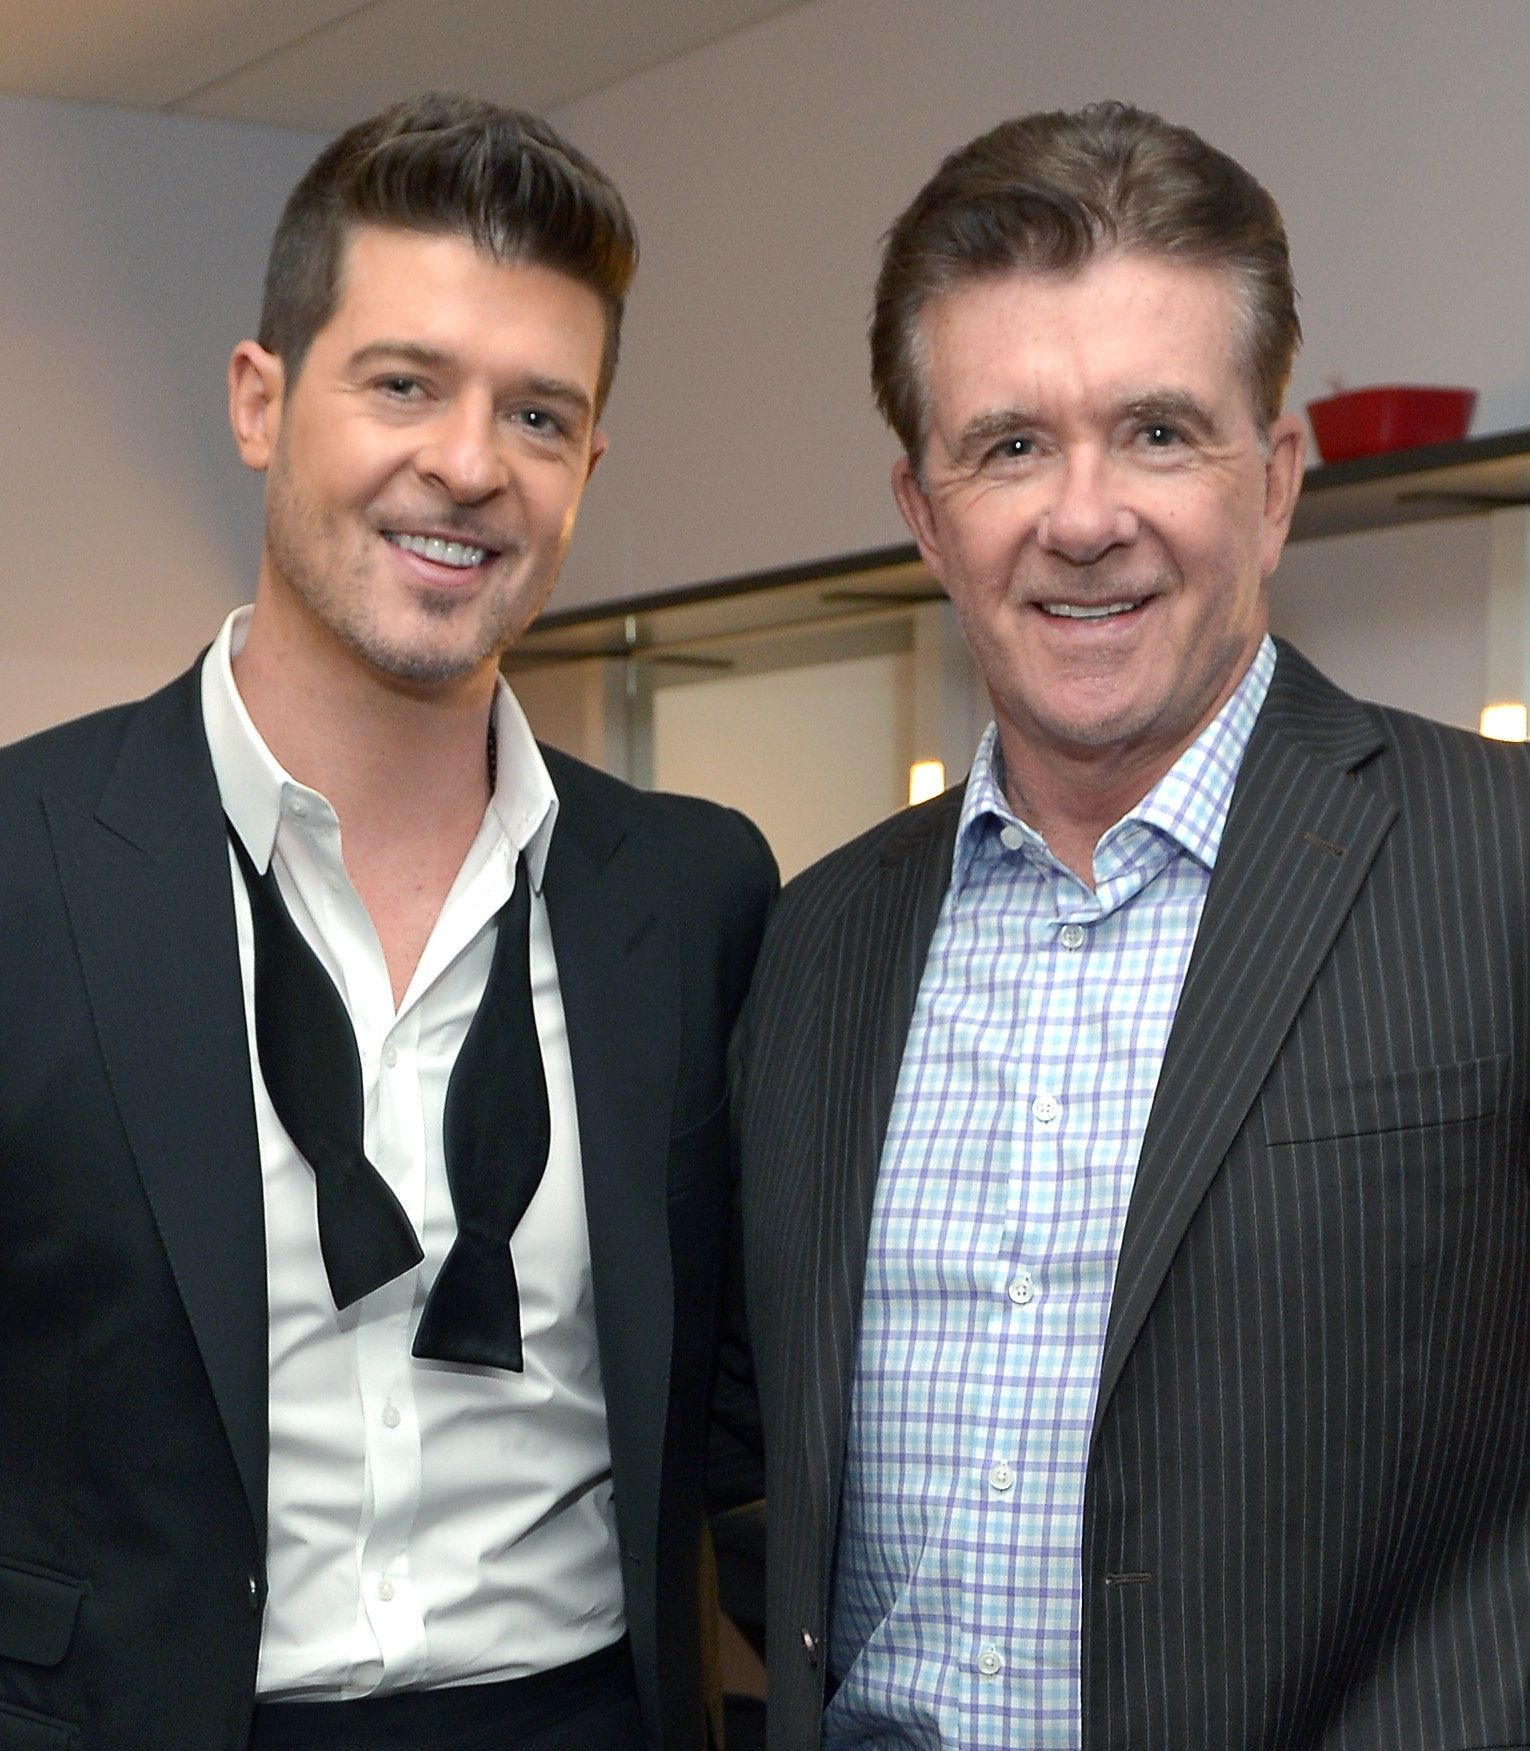 LOS ANGELES, CA - DECEMBER 06:  Recording artist Robin Thicke and actor Alan Thicke attend The GRAMMY Nominations Concert Live!! Countdown to Music's Biggest Night at Nokia Theatre L.A. Live on December 6, 2013 in Los Angeles, California.  (Photo by Charley Gallay/WireImage)